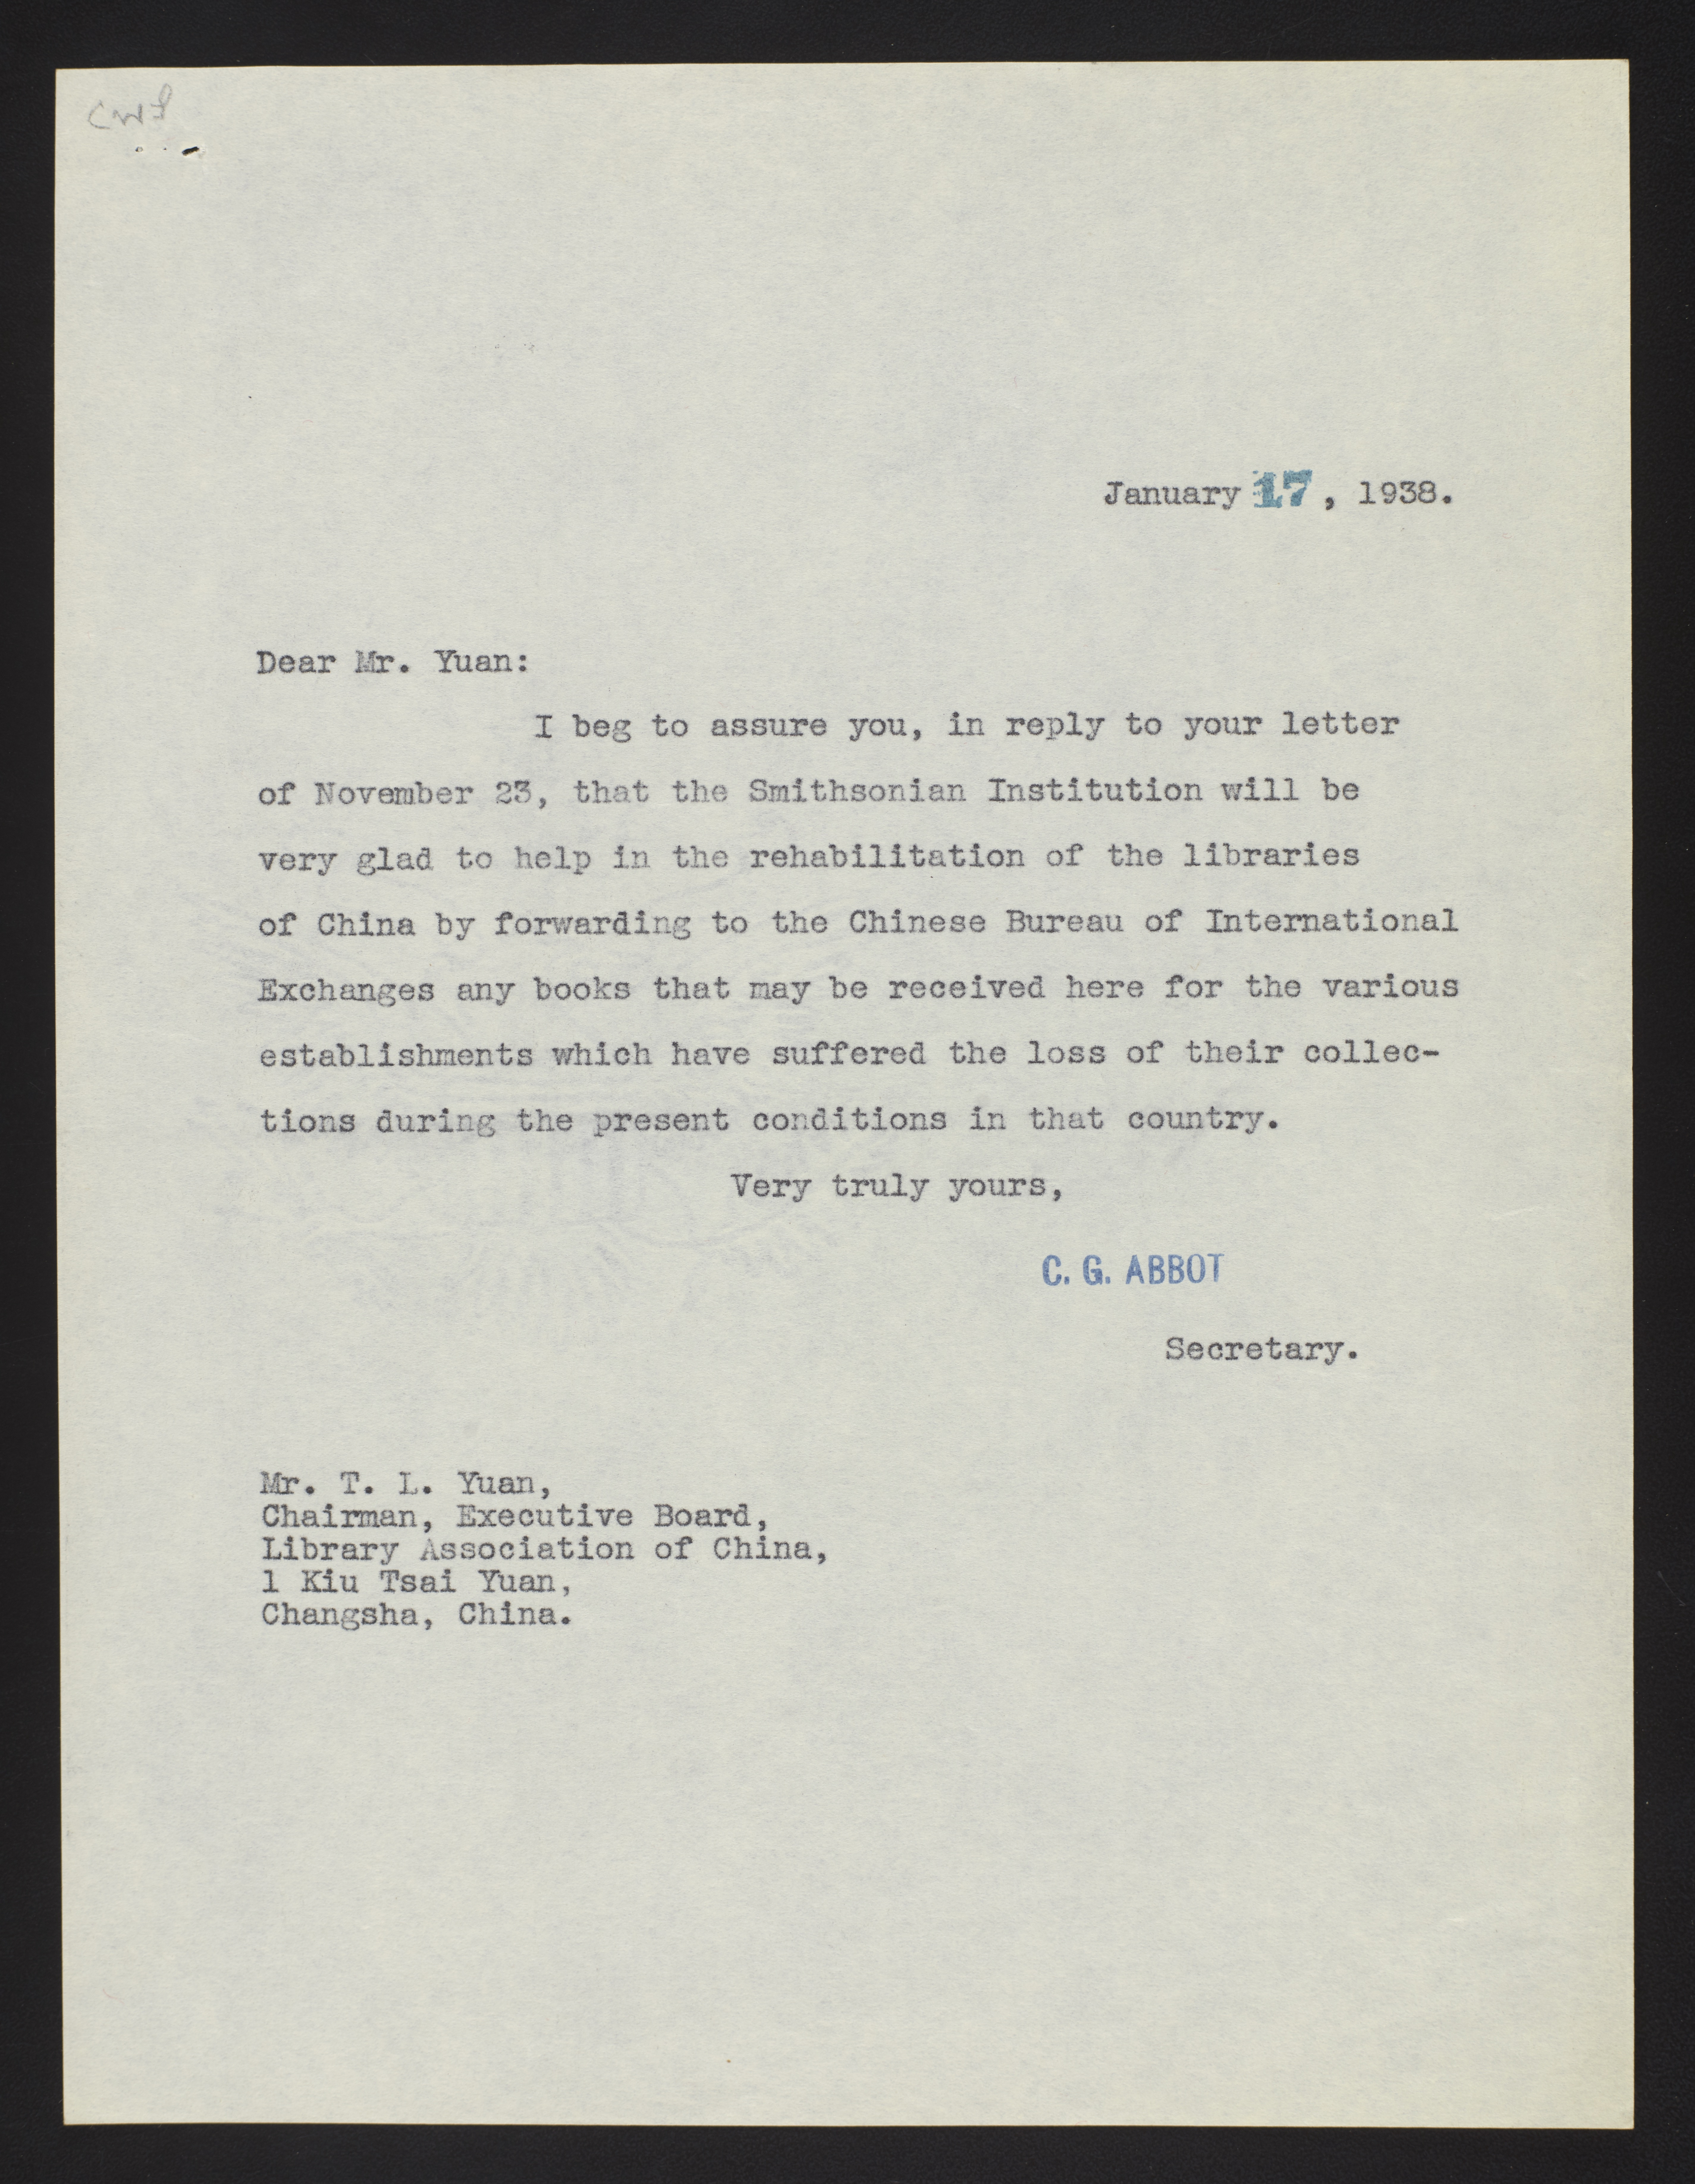 Typewritten letter from Smithsonian Secretary Charles G. Abbot to Library Association of China Chair